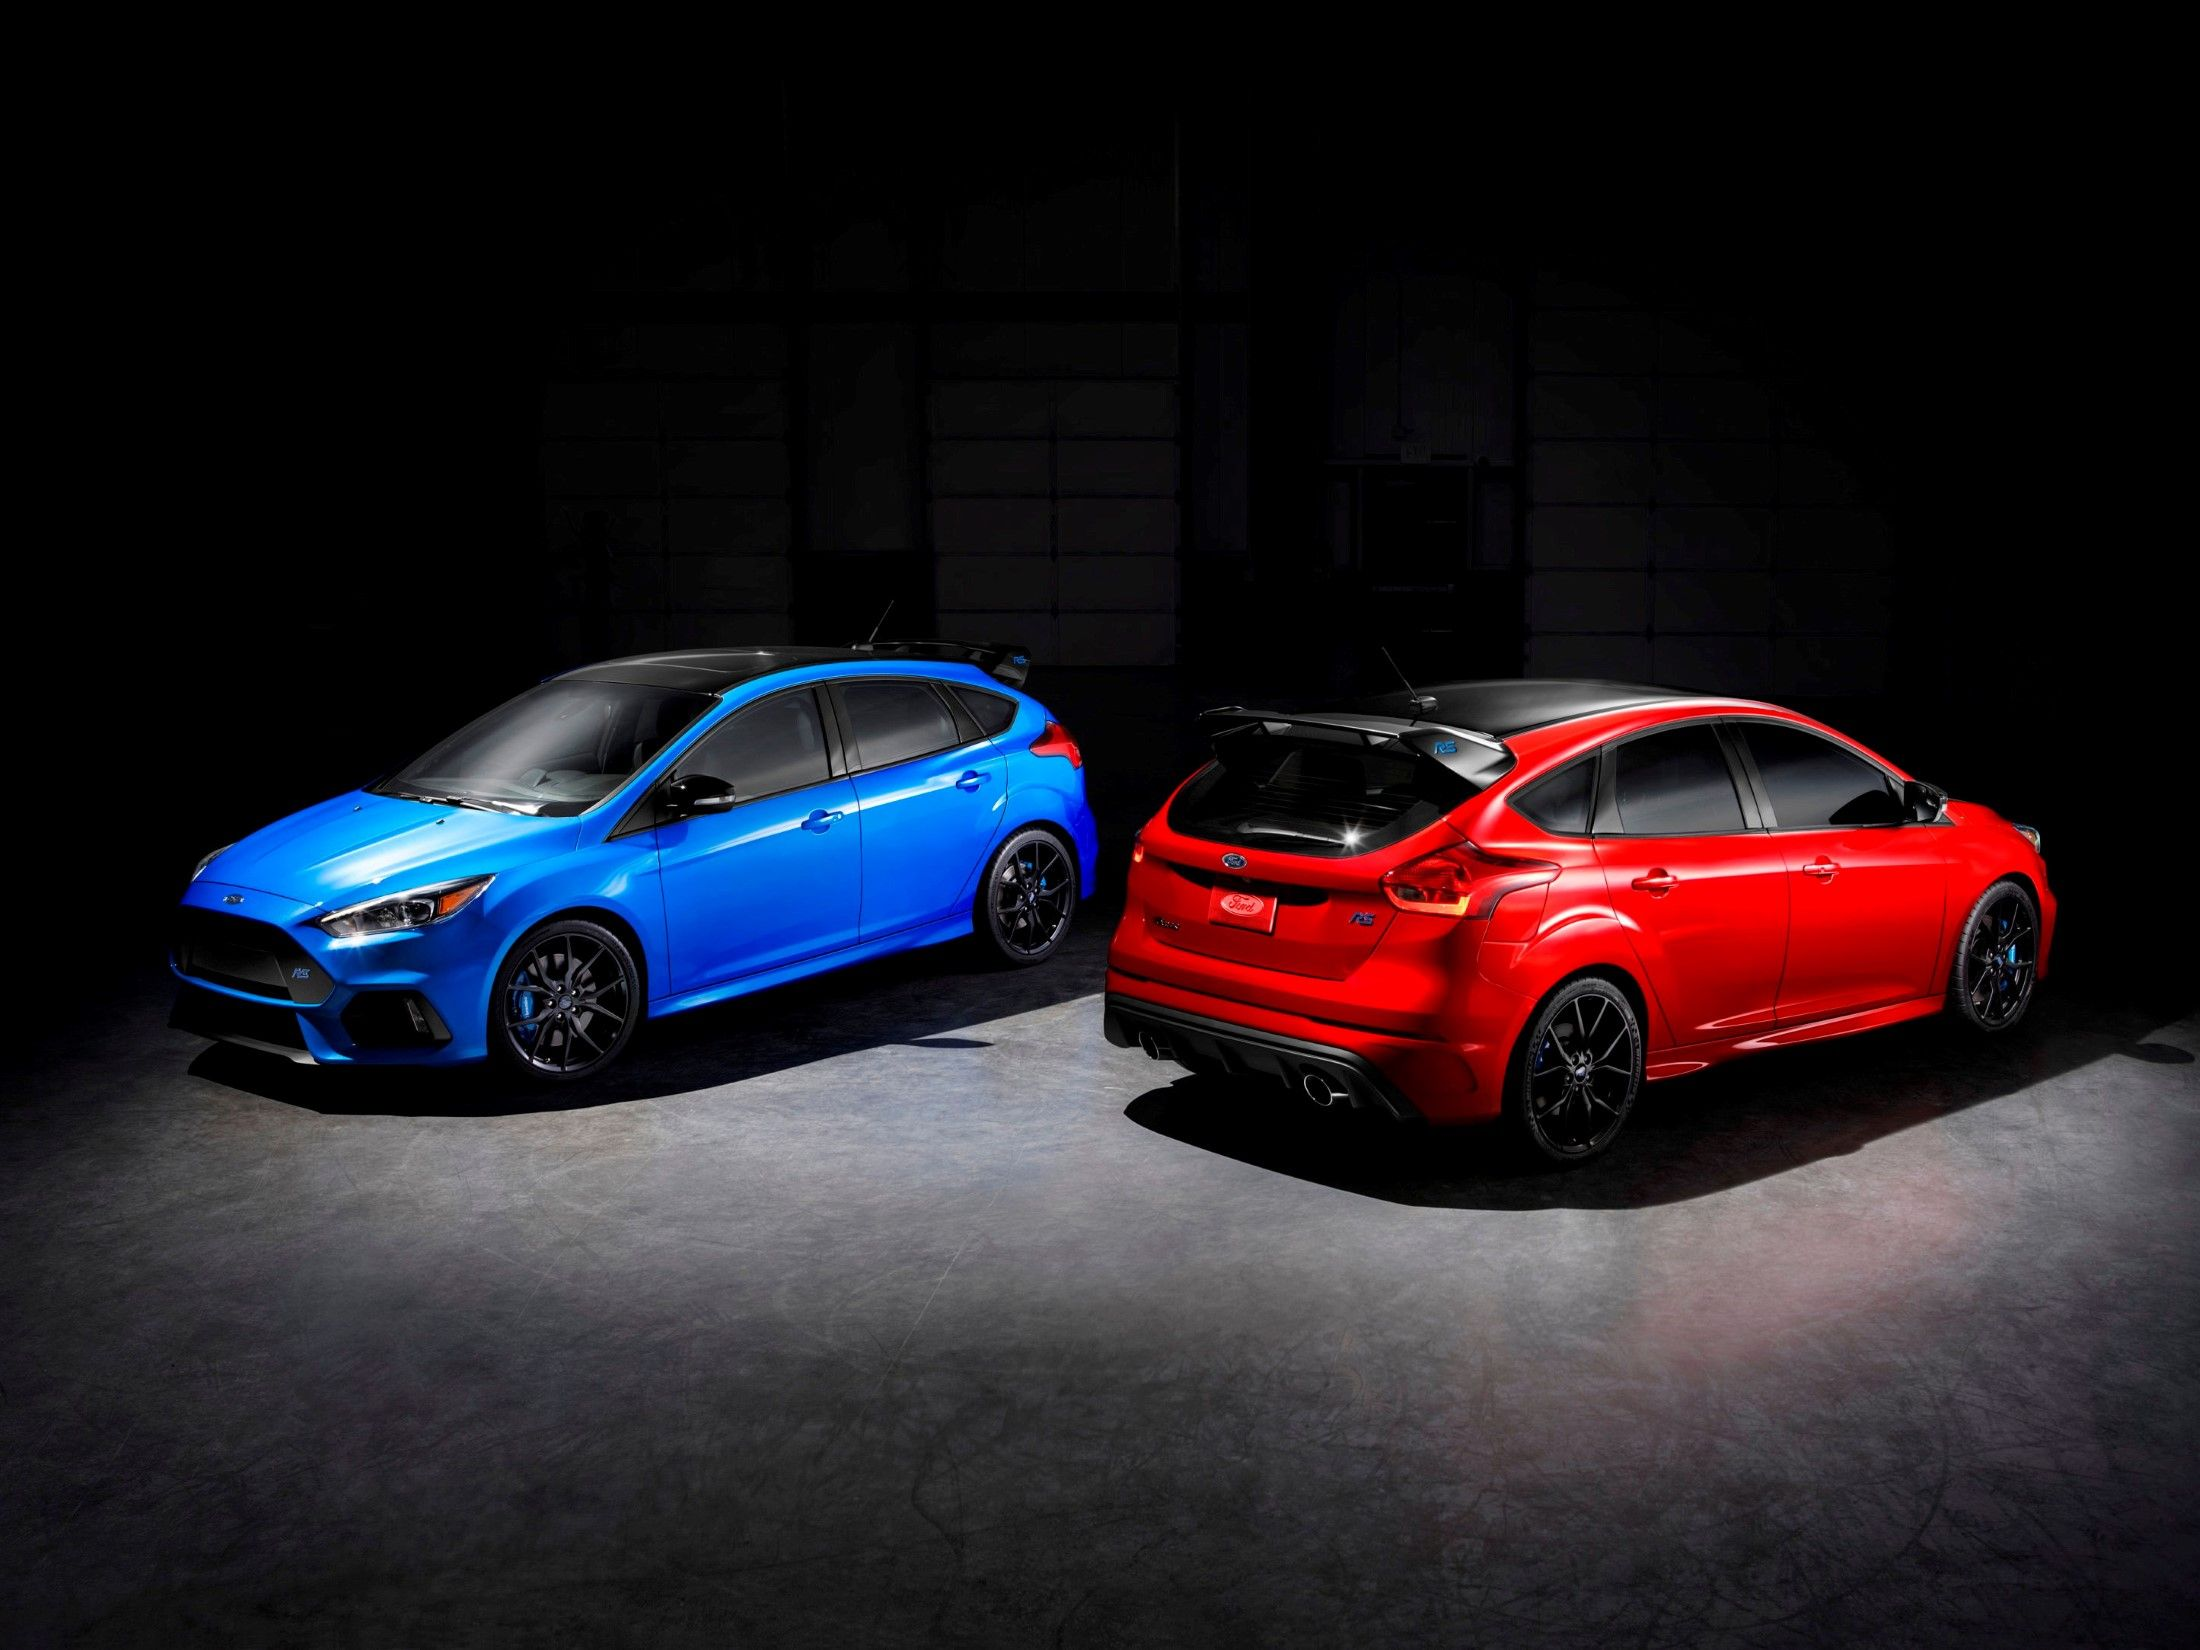 2018 Ford Focus Rs Limited Edition Ford Focus Ford Focus Rs